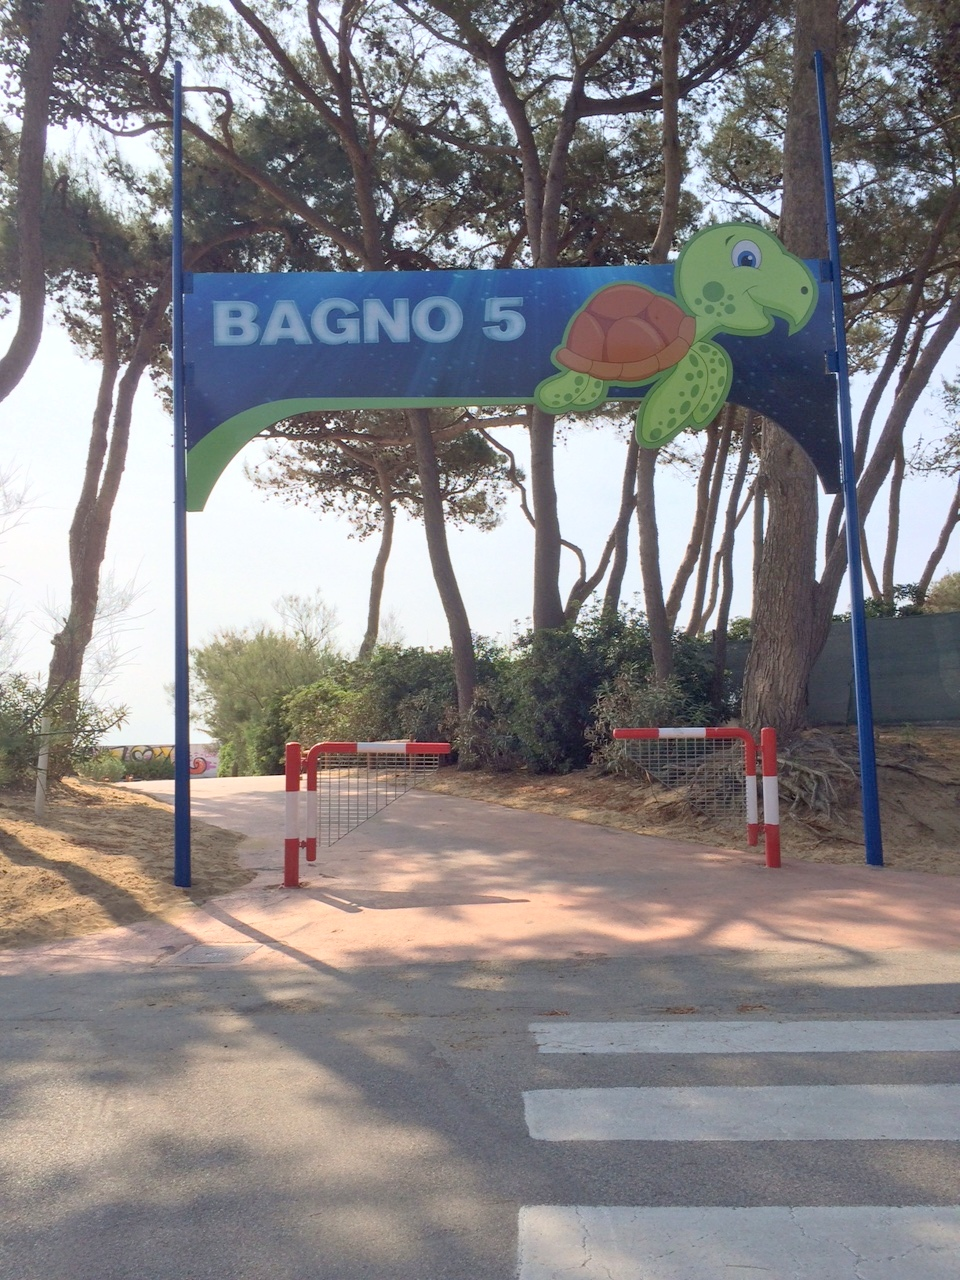 5 bagno 5 beach establishment lignano sabbiadoro